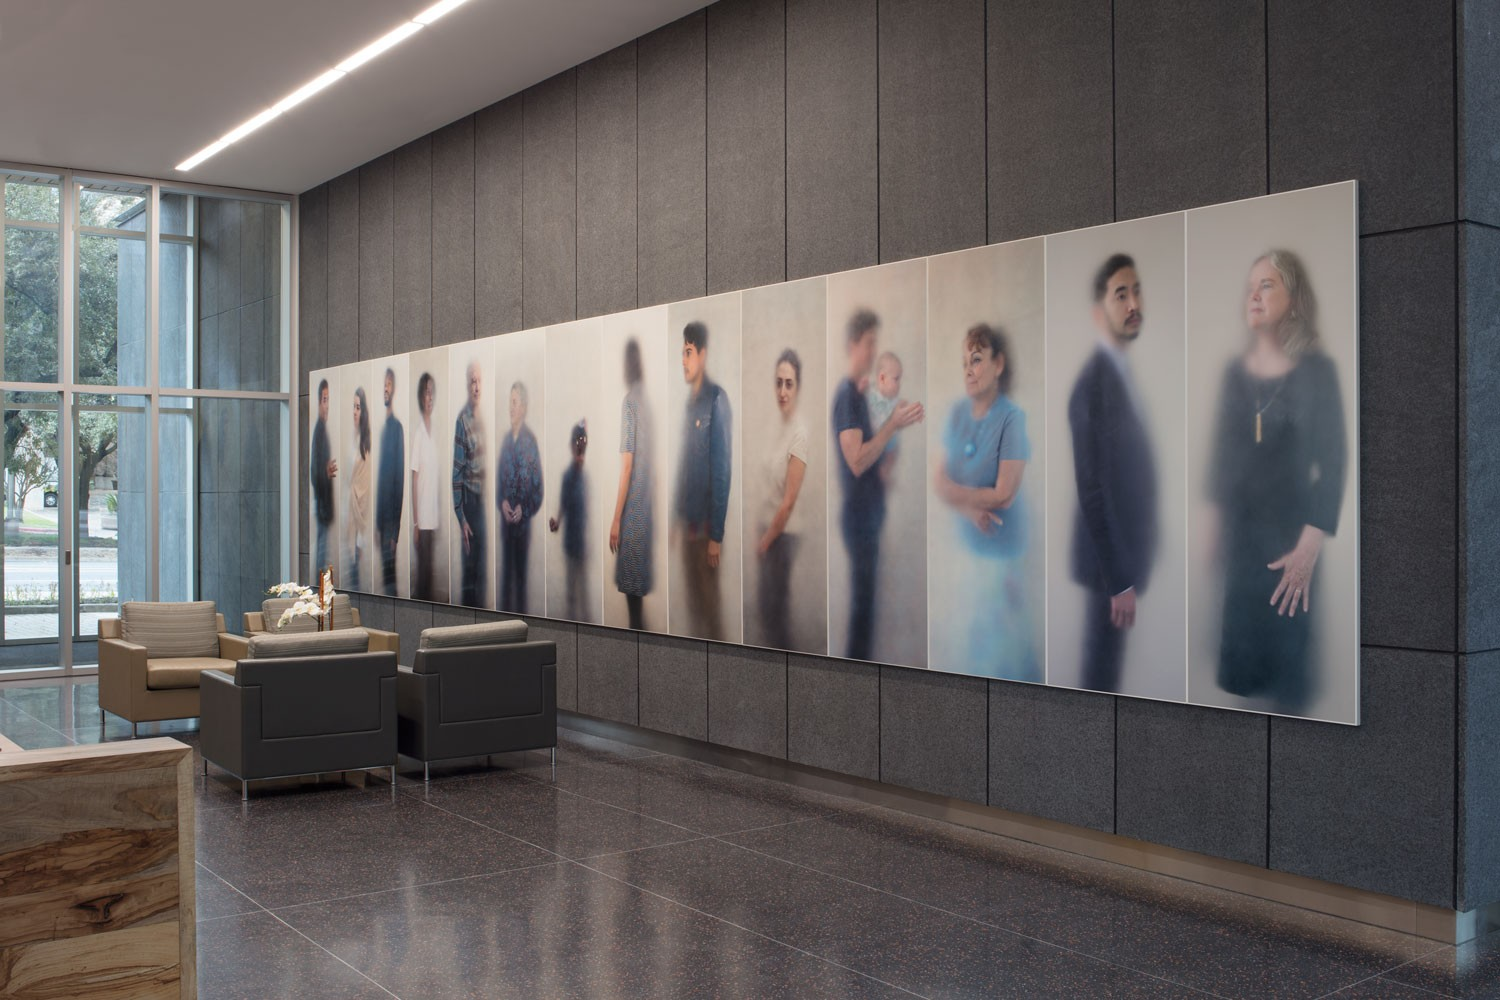 A large wall of hazy photographs